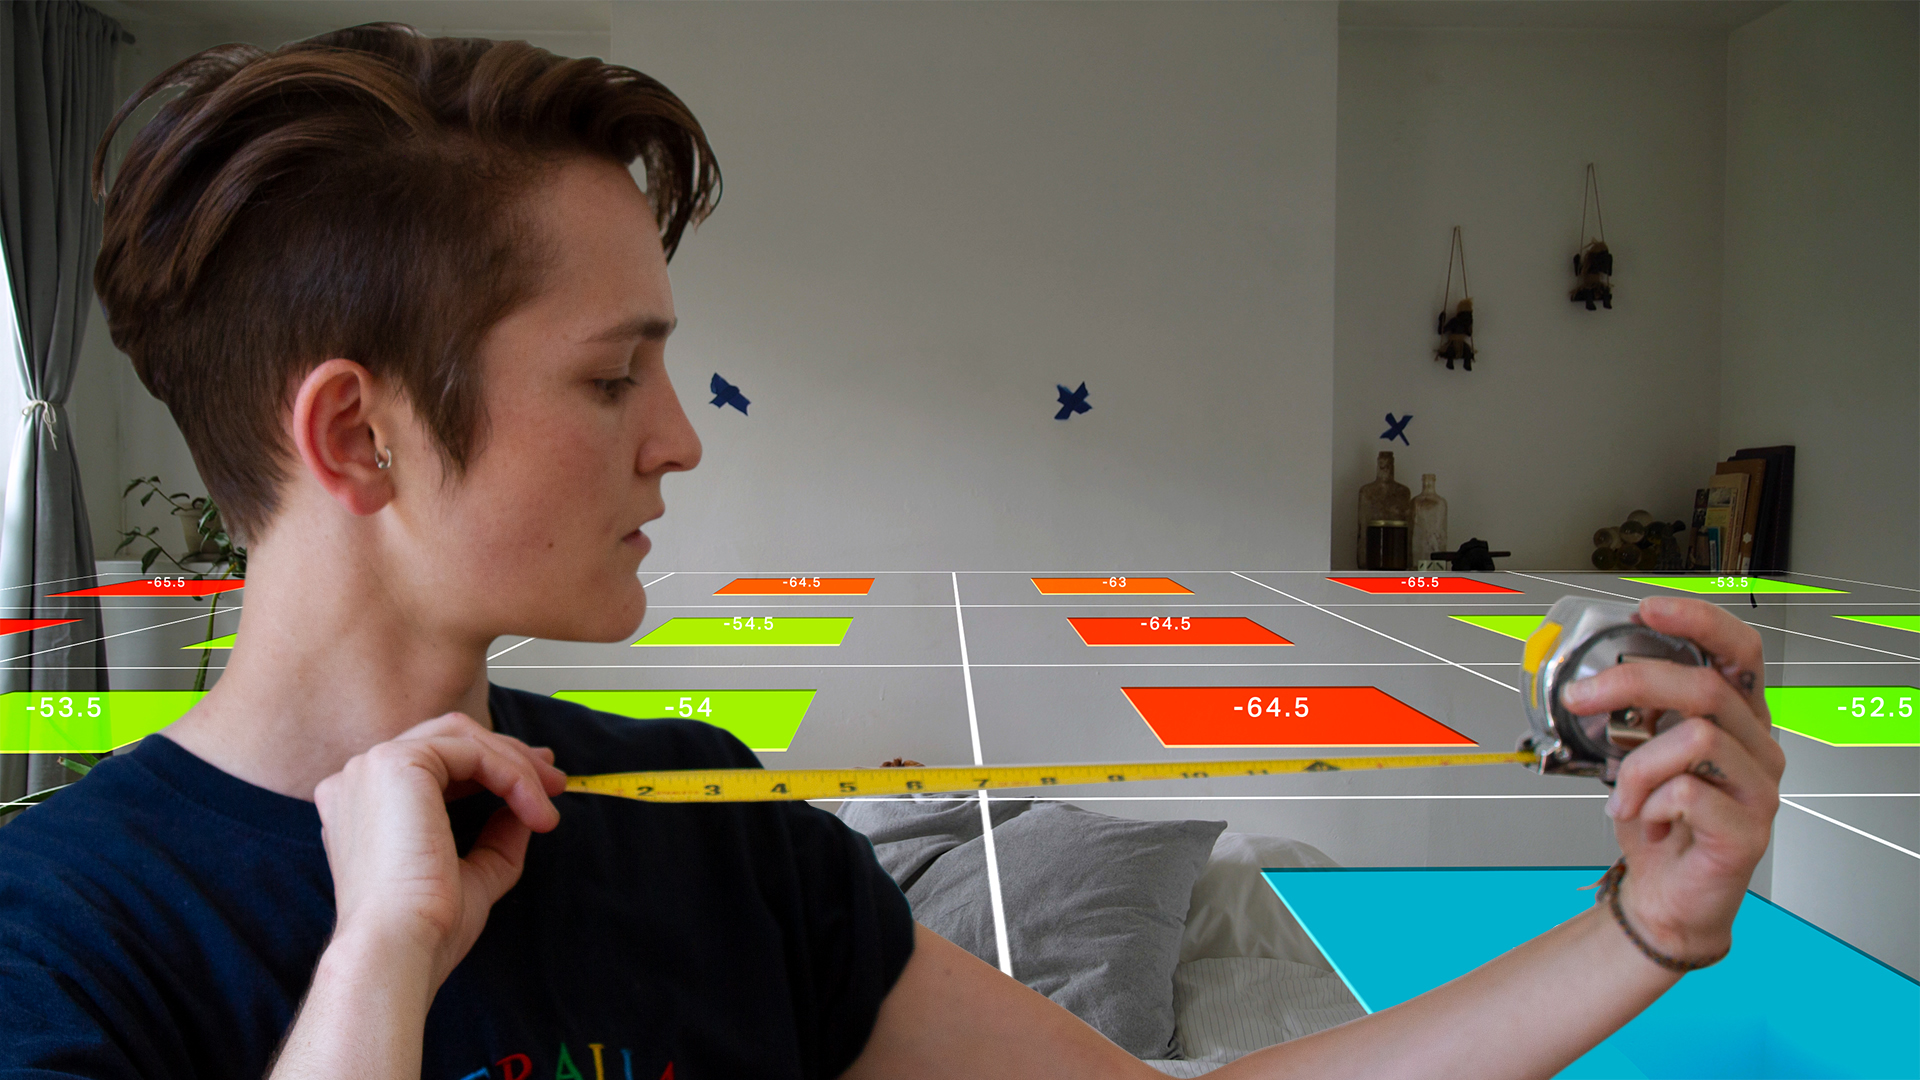 Video host uses tape measure in foreground; in background, a graphic grid representing wi-fi signal strength stretches across a room.